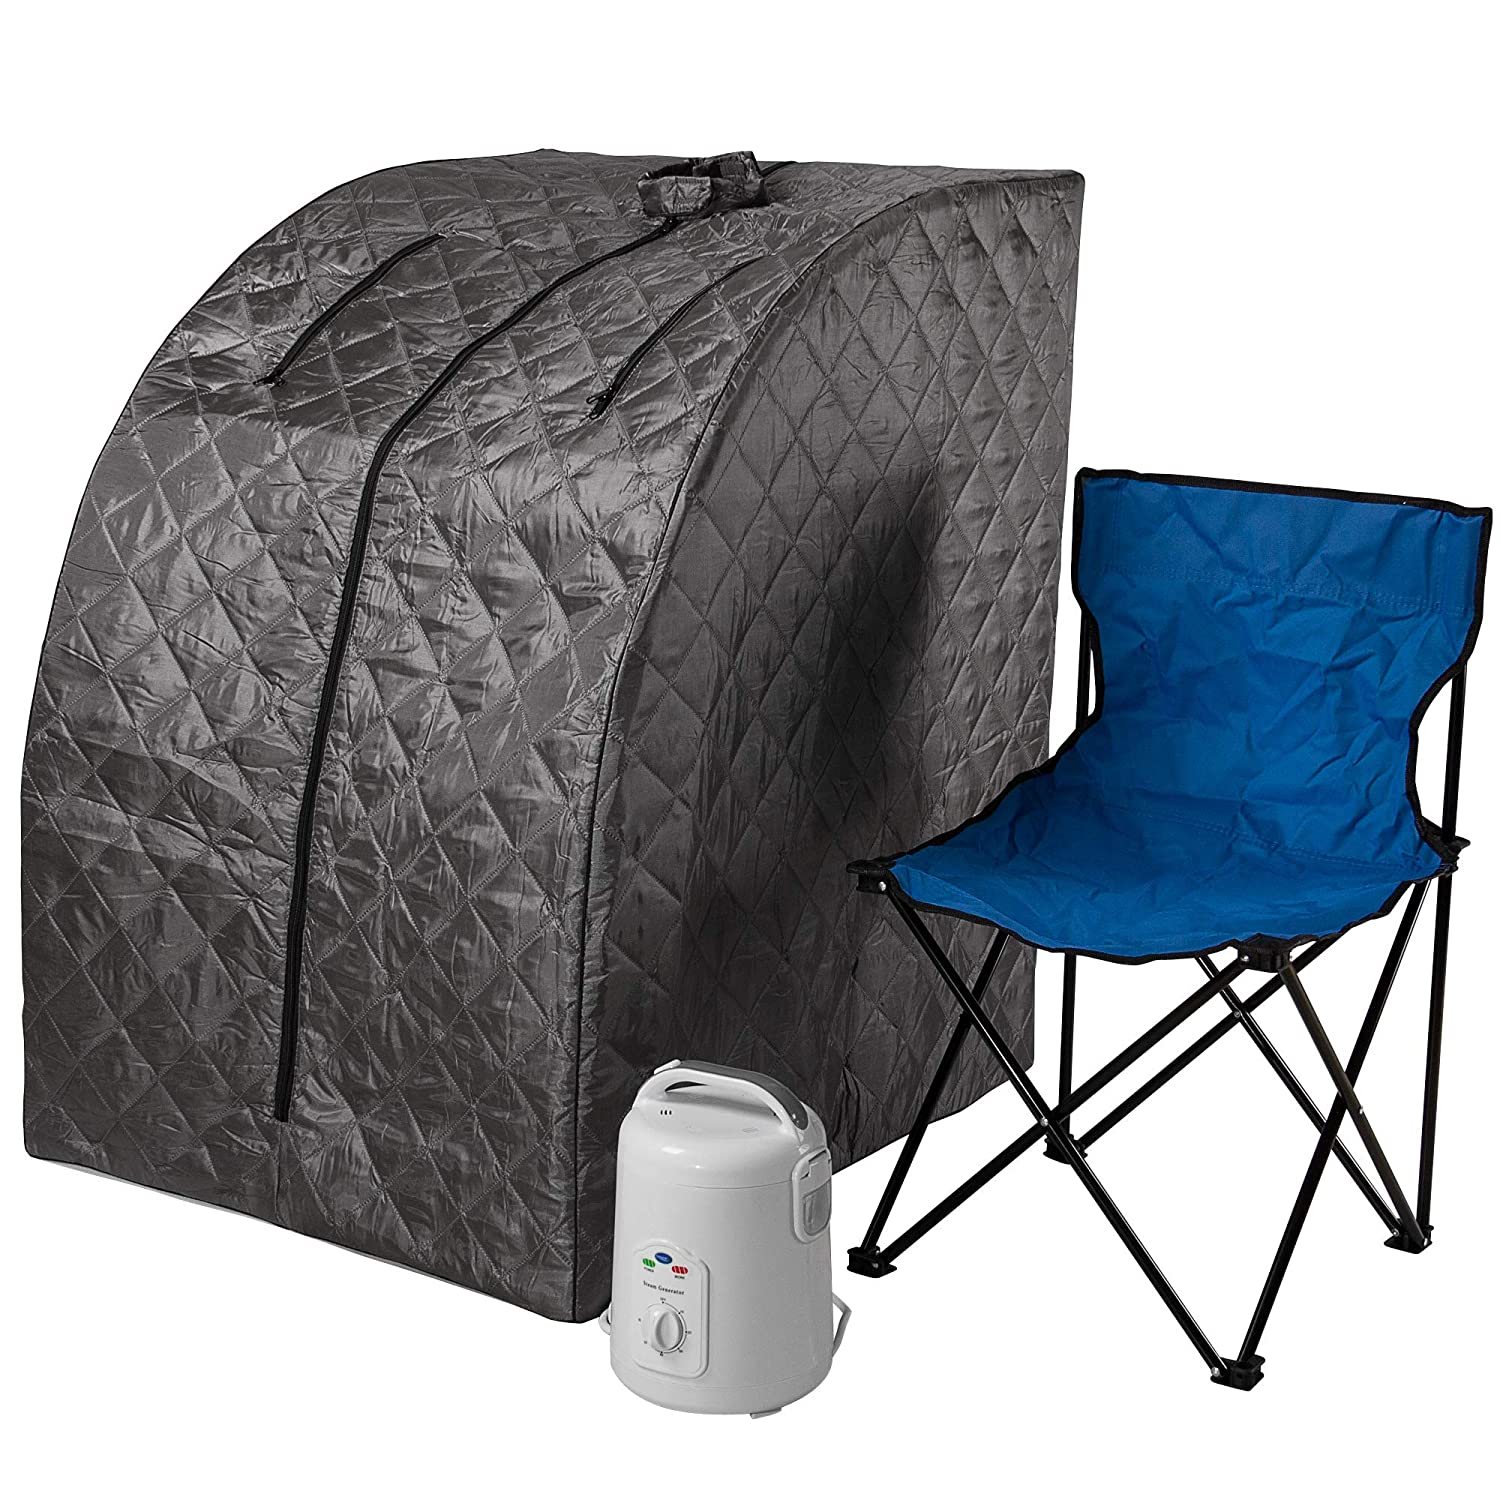 Durasage Lightweight Portable Personal Steam Sauna Spa for Weight Loss, Detox, Relaxation at Home, 60 Minute Timer, 800 Watt Steam Generator, Chair Inlcuded - Gray SS03-GRAY